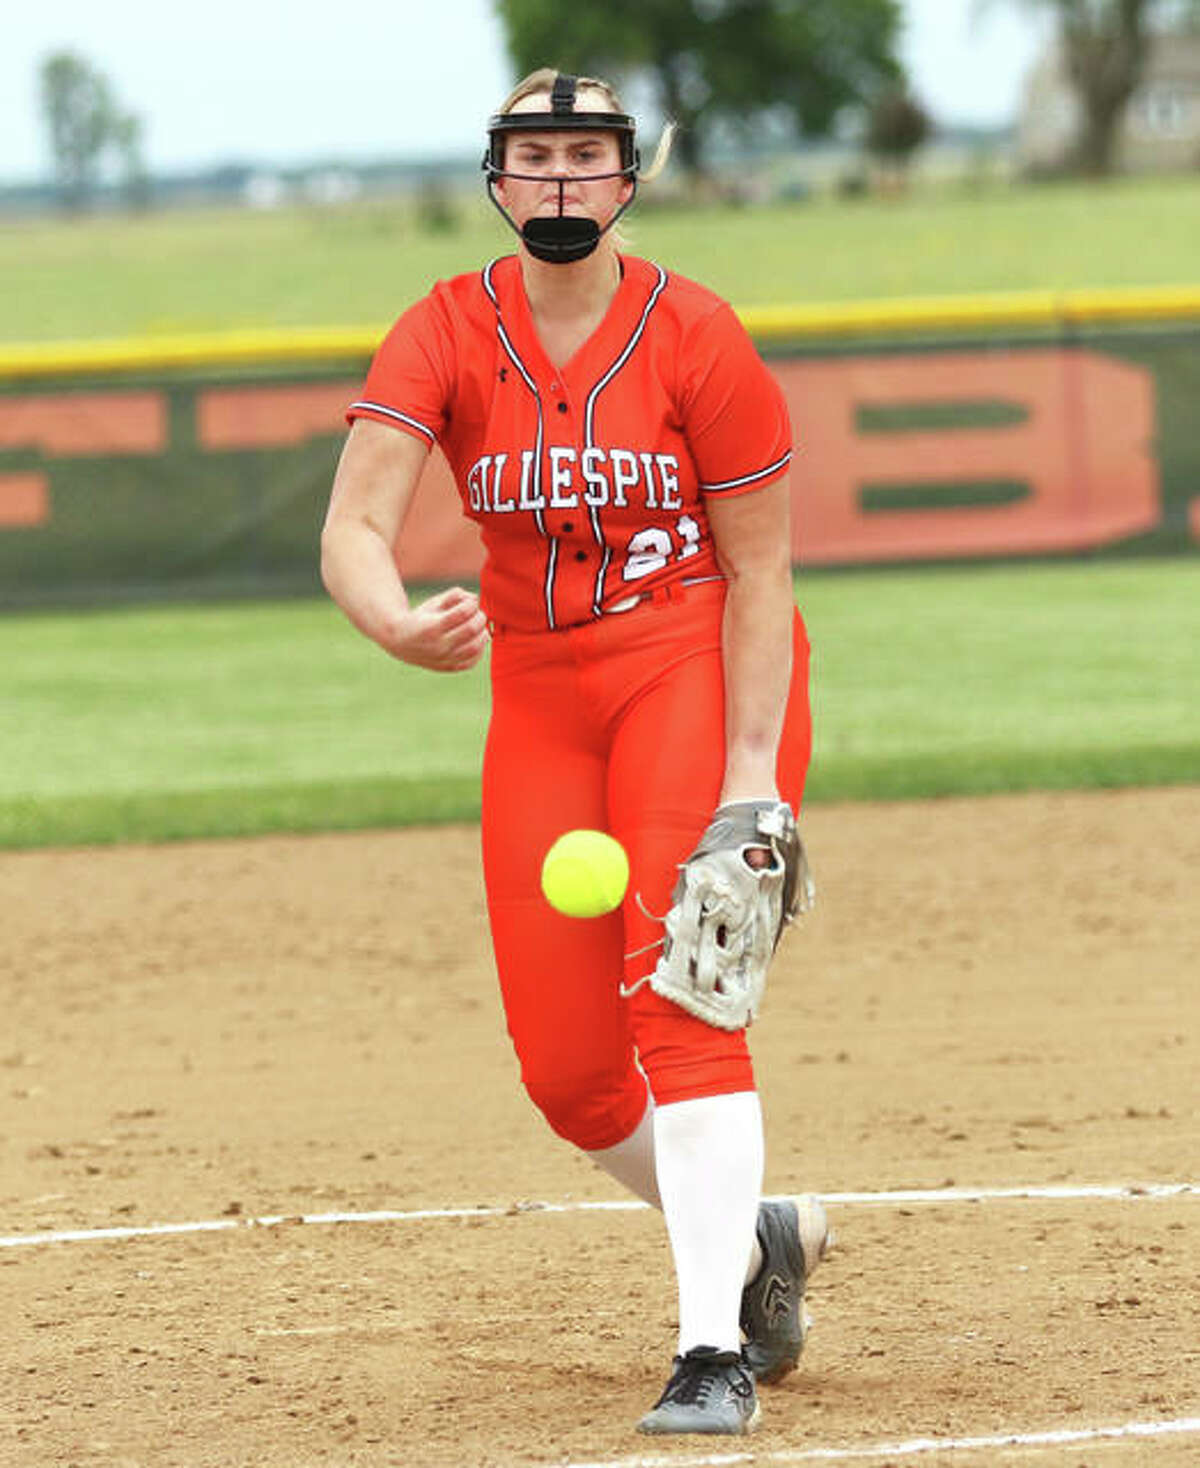 Gillespie senior Sydney Bires, shown pitching in a game earlier this season in Gillespie, threw a no-hitter on Tuesday in the Miners' SCC win over Roxana in Gillespie.